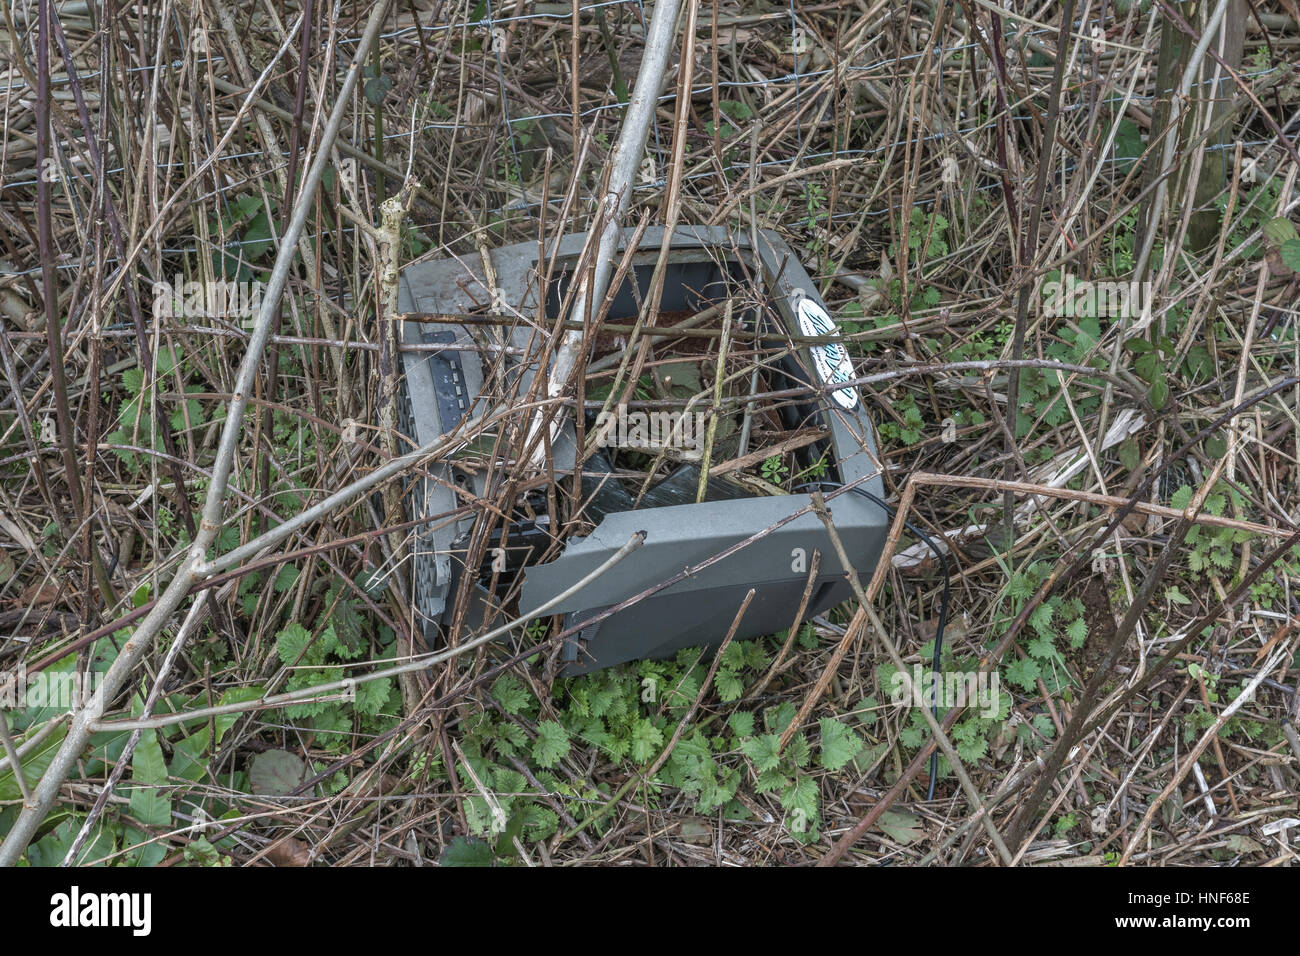 Environmental pollution in form or roadside and hedgerow rubbish discarded by the public. Fly tipping metaphor. - Stock Image